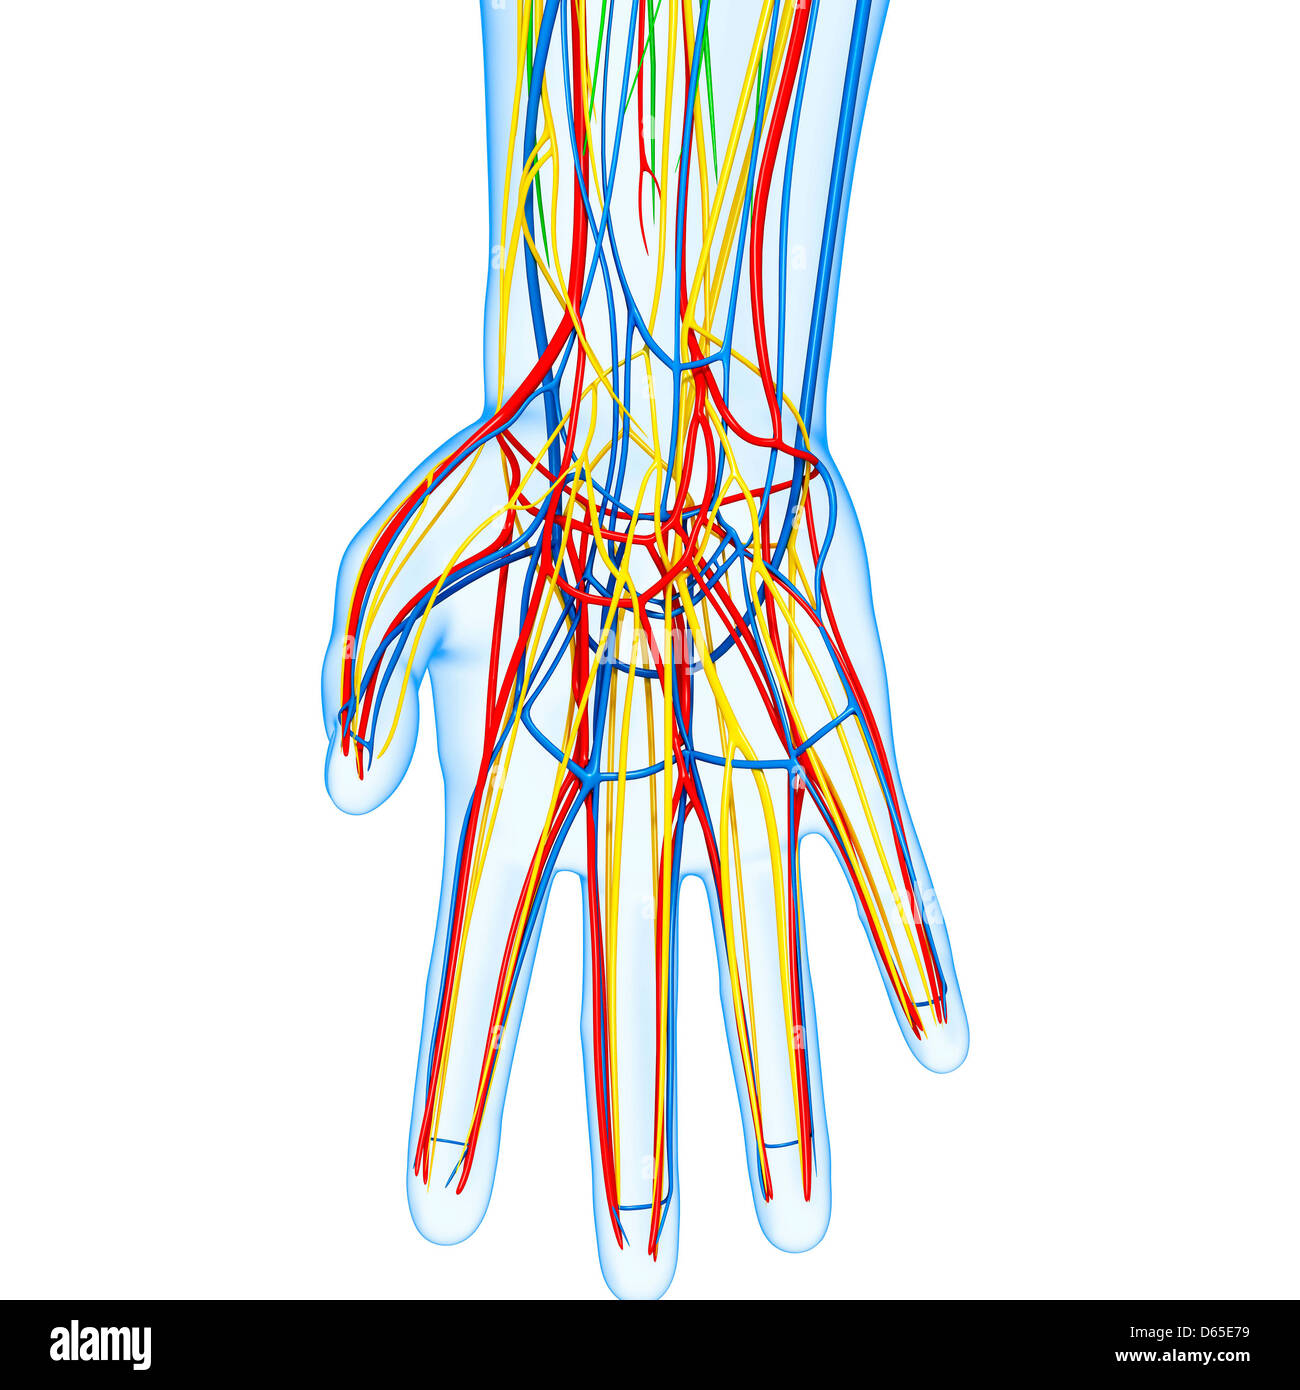 Human Hand Bones Artwork Stock Photos & Human Hand Bones Artwork ...